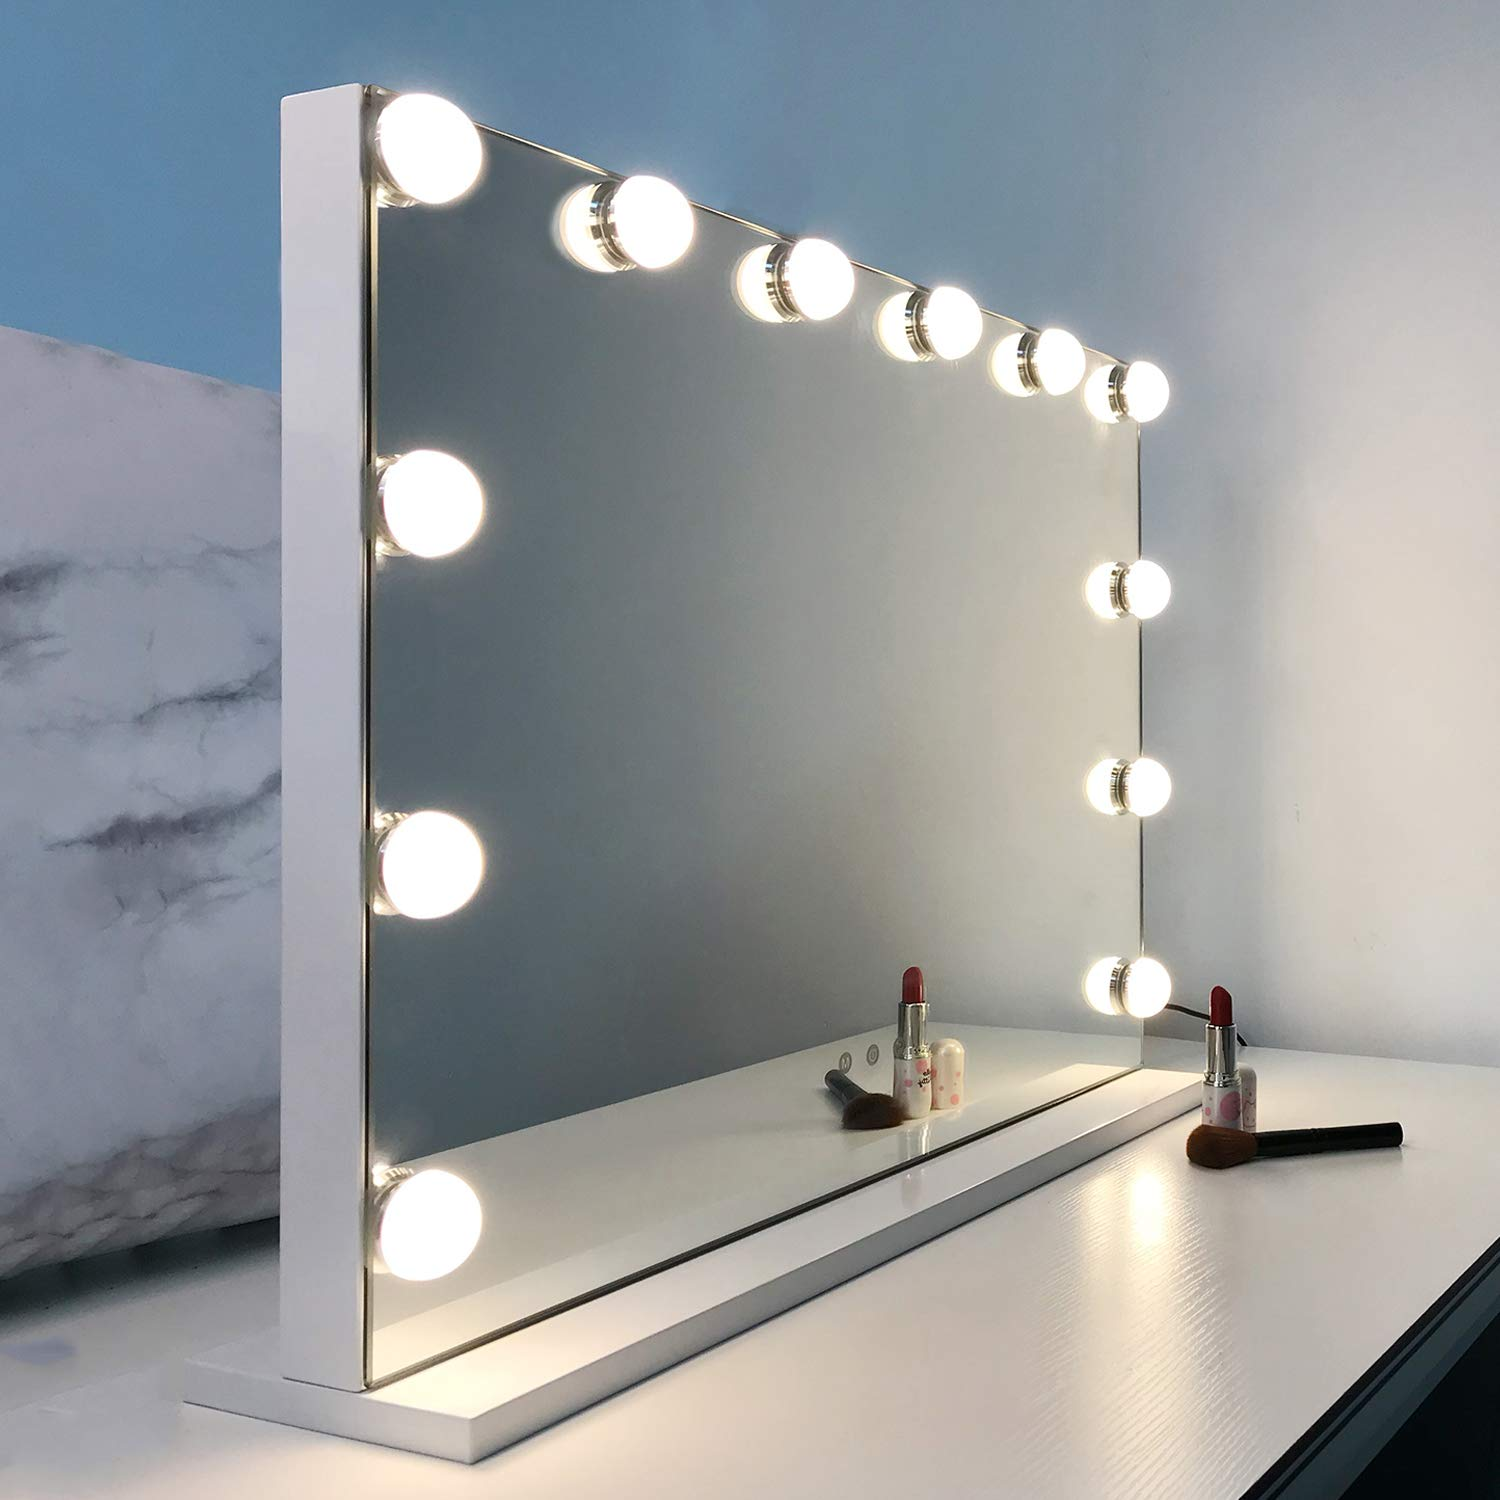 Amazon Com Wayking Vanity Mirror With Lights Hollywood Lighted Makeup Mirror With 12 Dimmable Led Bulbs Tabletop Or Wall Mounted Mirror With Usb Outlet And 3 Lighting Modes H17 3 X L22 8 Inch Beauty